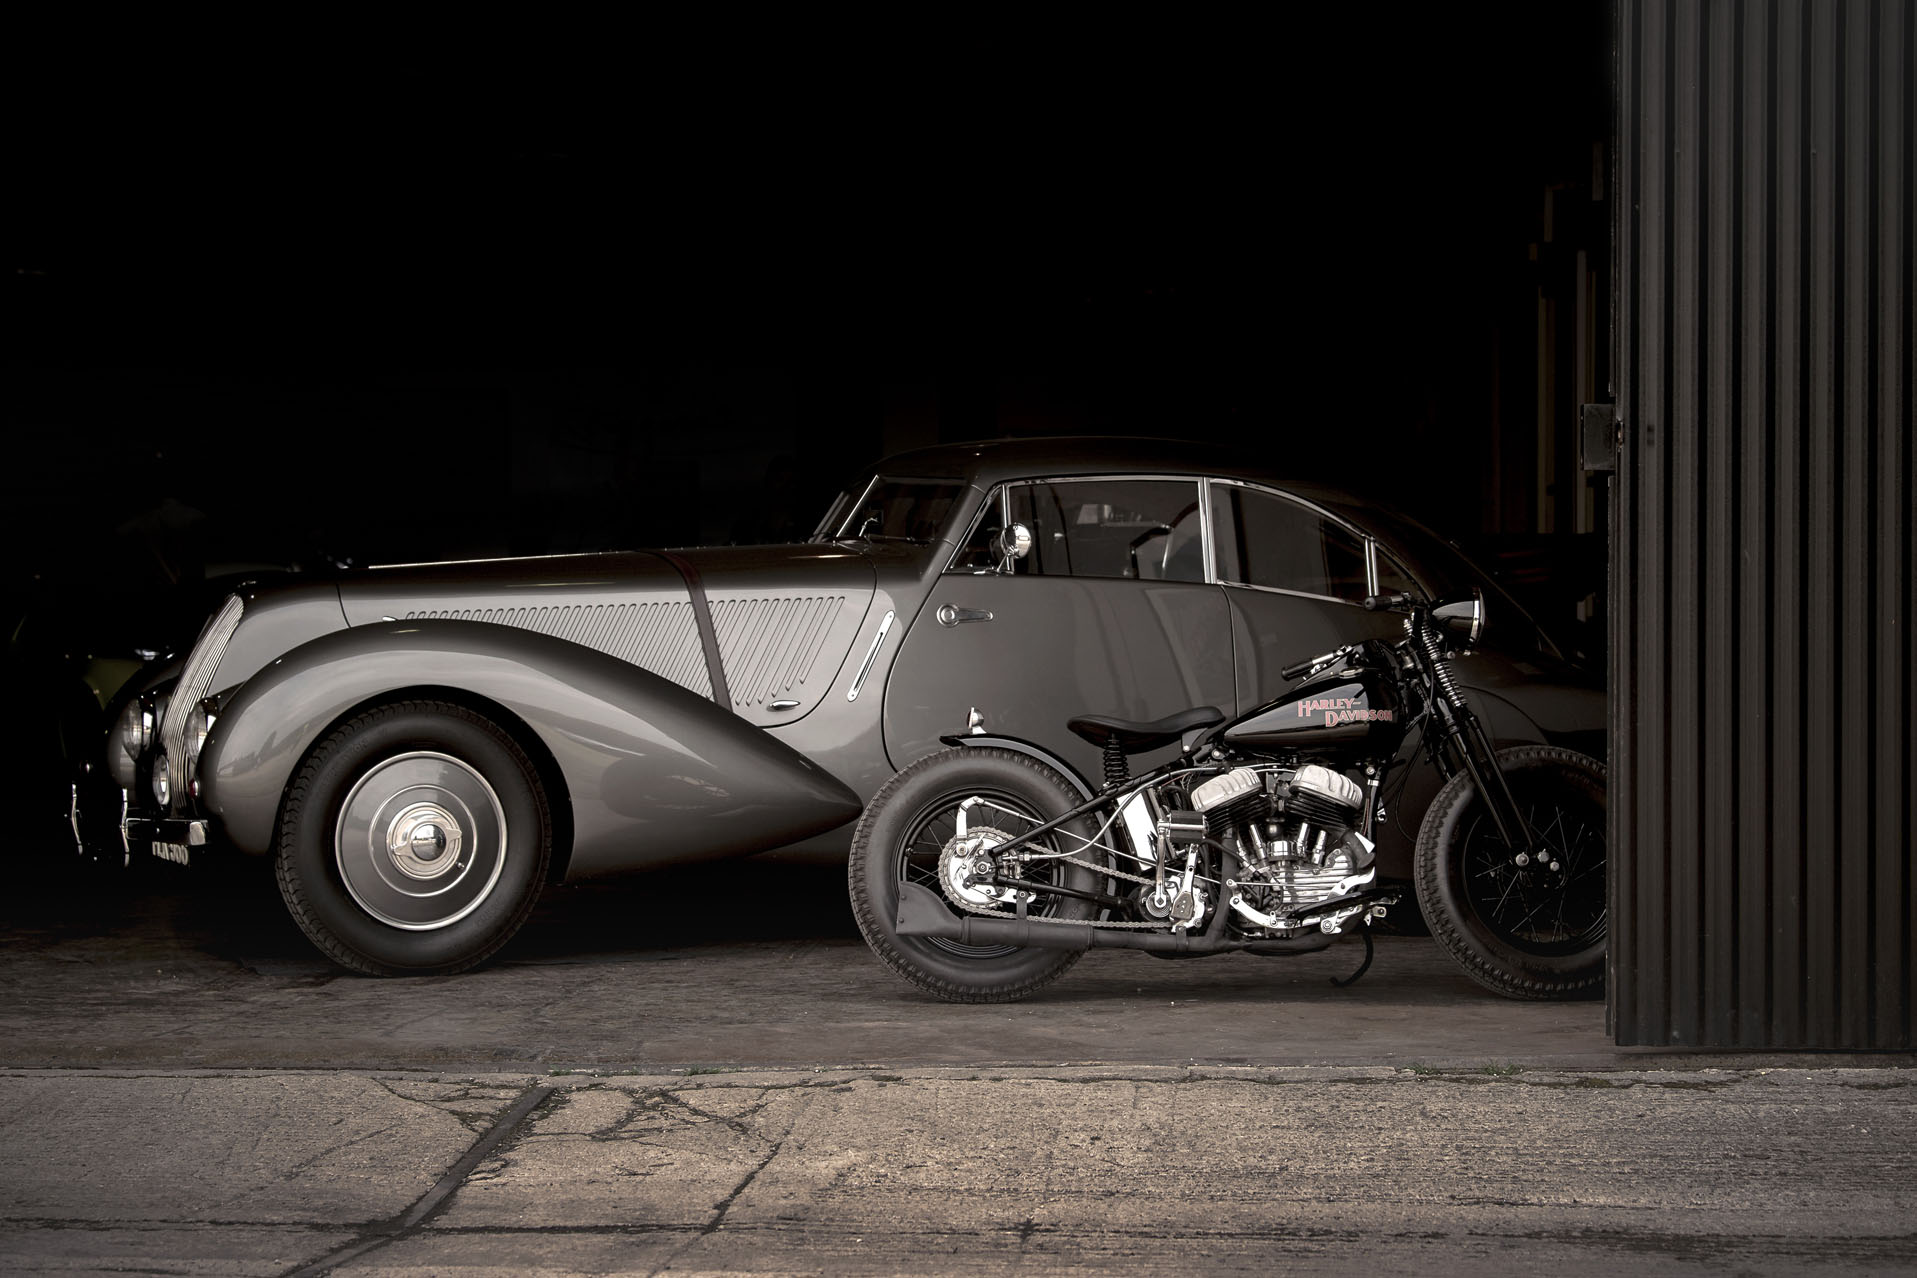 Classic car and Harley Davidson